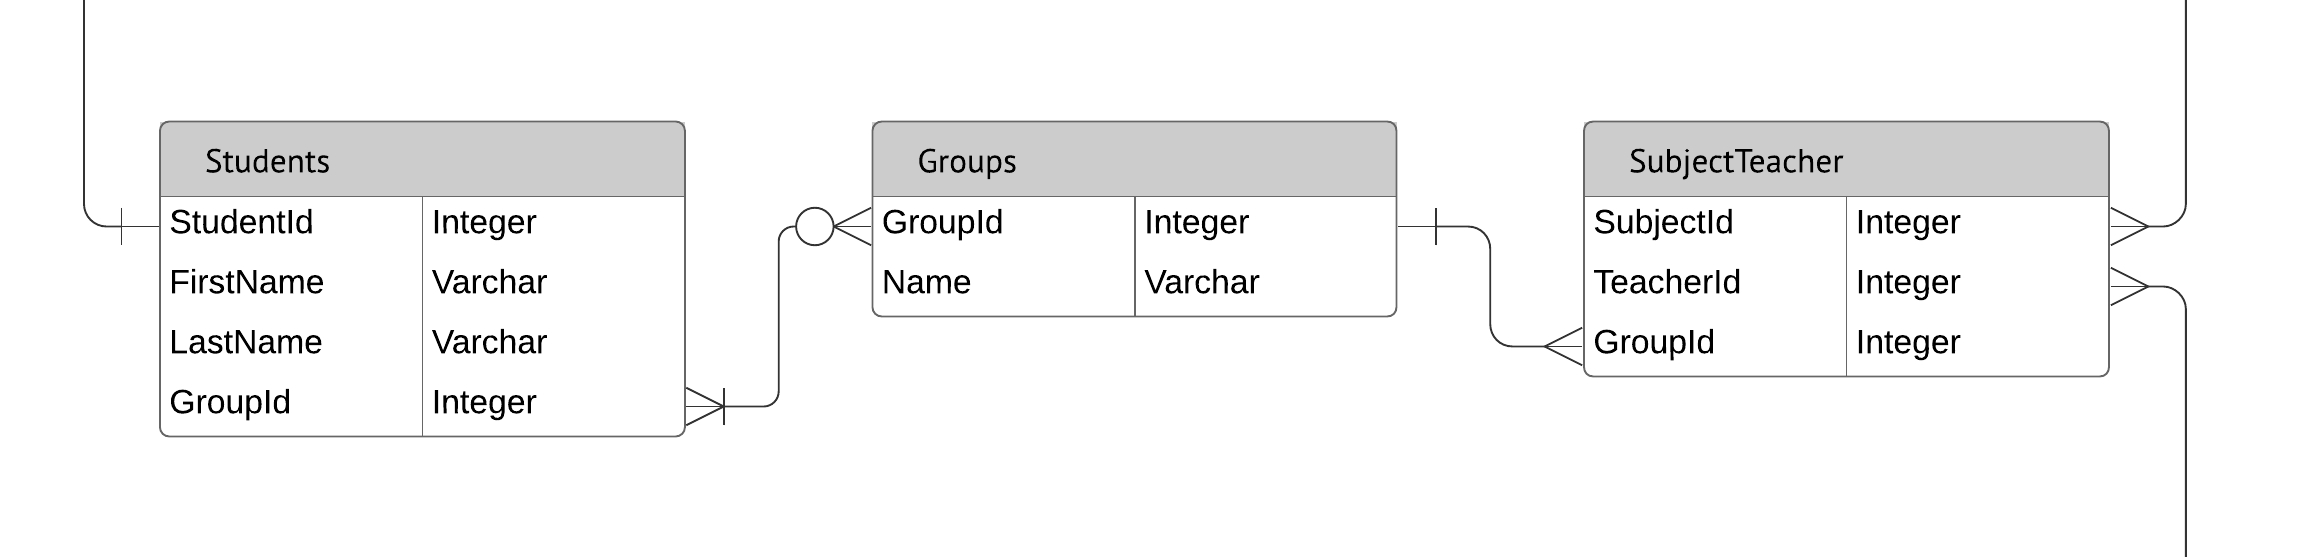 Entity Relationship Diagrams (Erds) – Lucidchart with regard to Er Diagram Access 2016